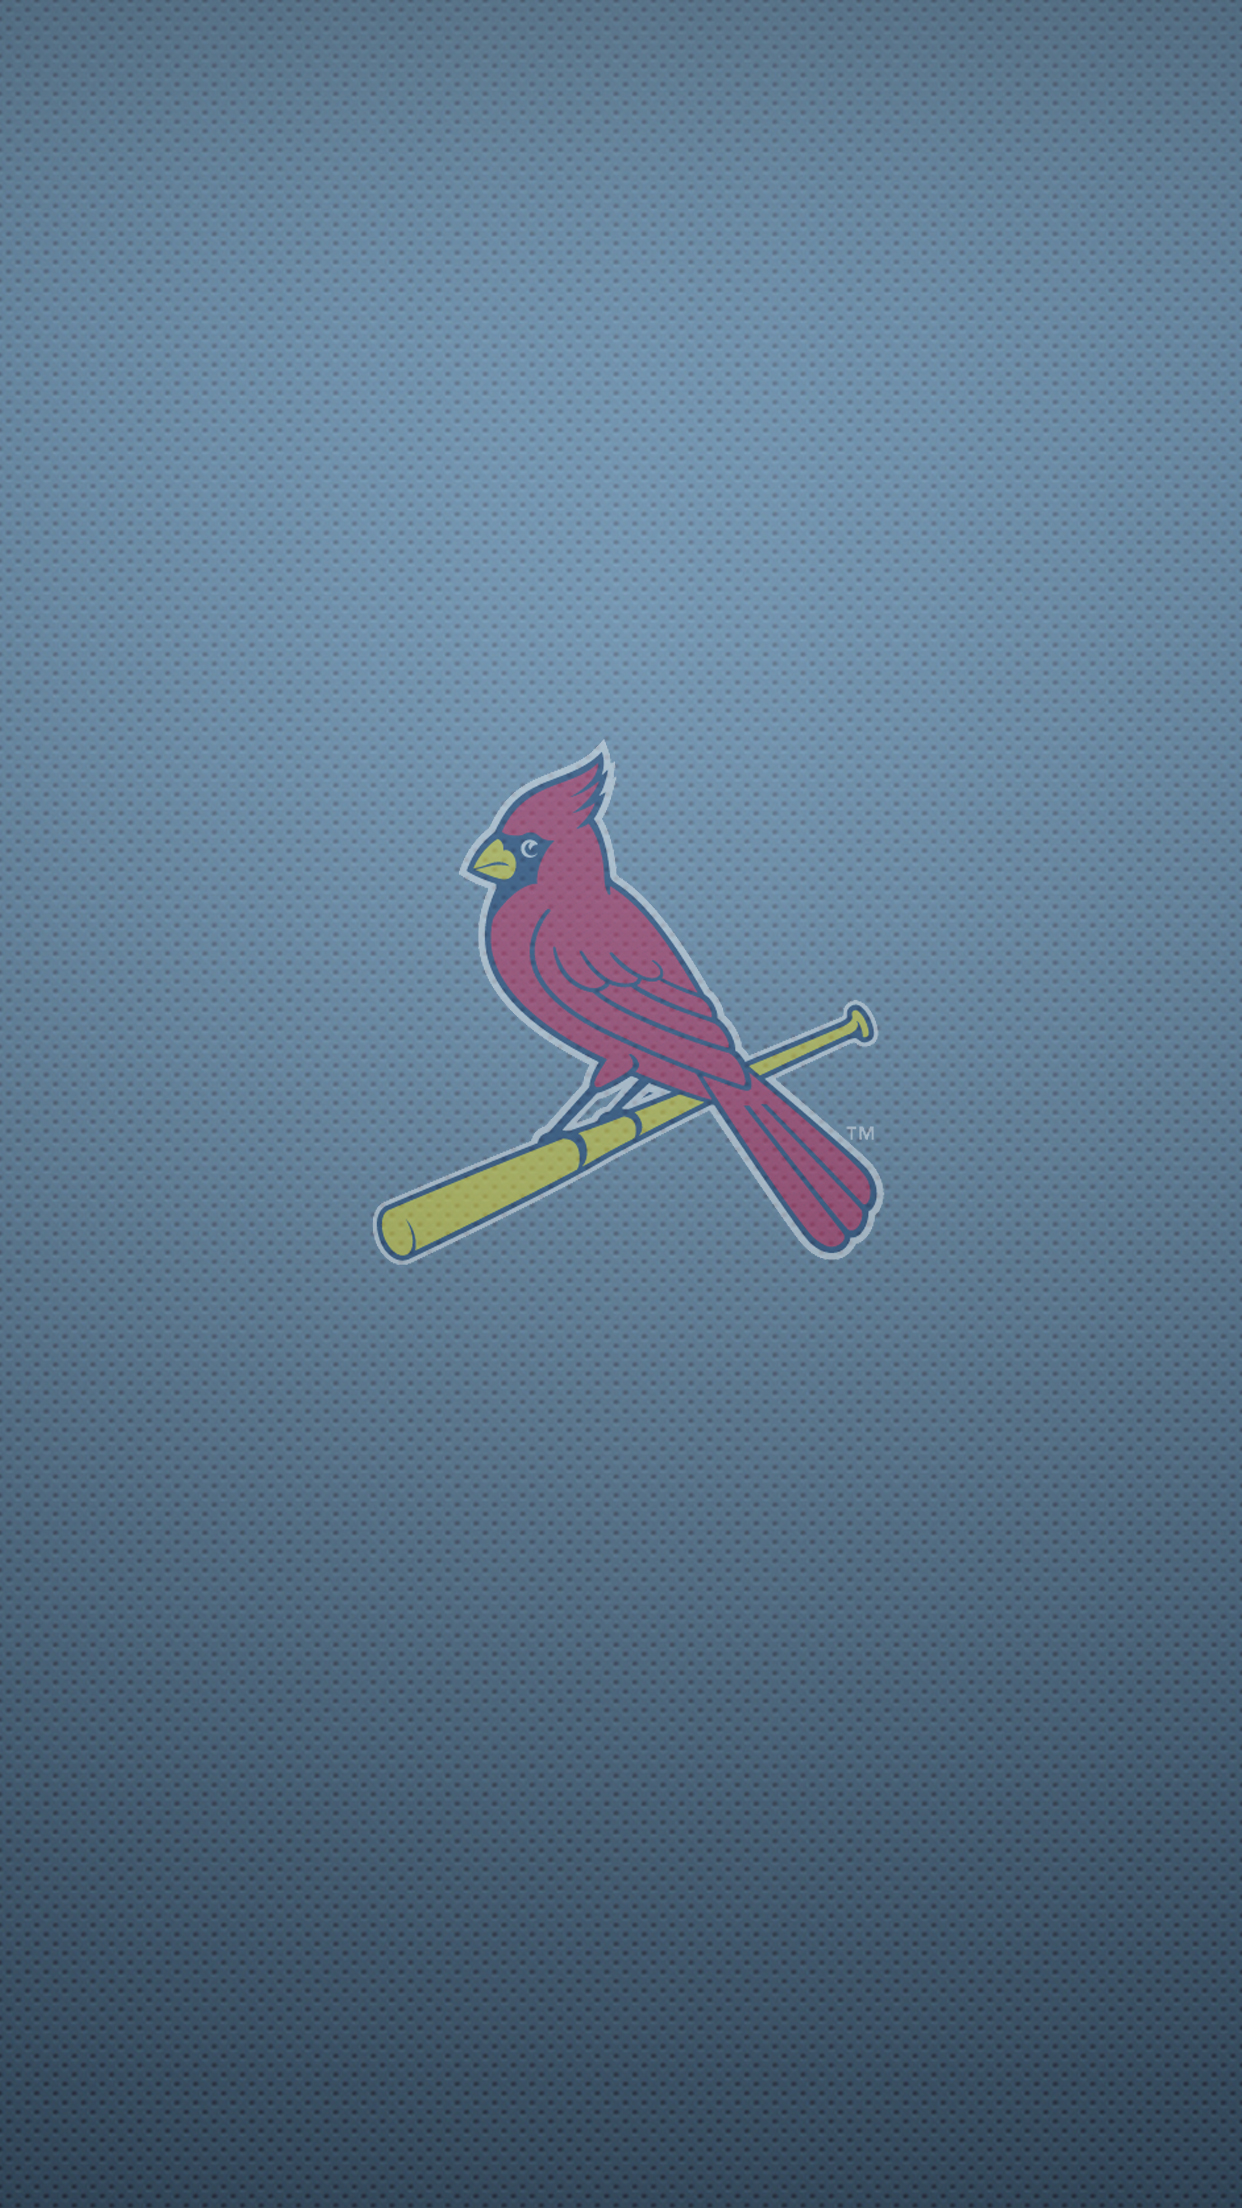 Redbirdcentral Com St Louis Cardinals Wallpaper St Louis